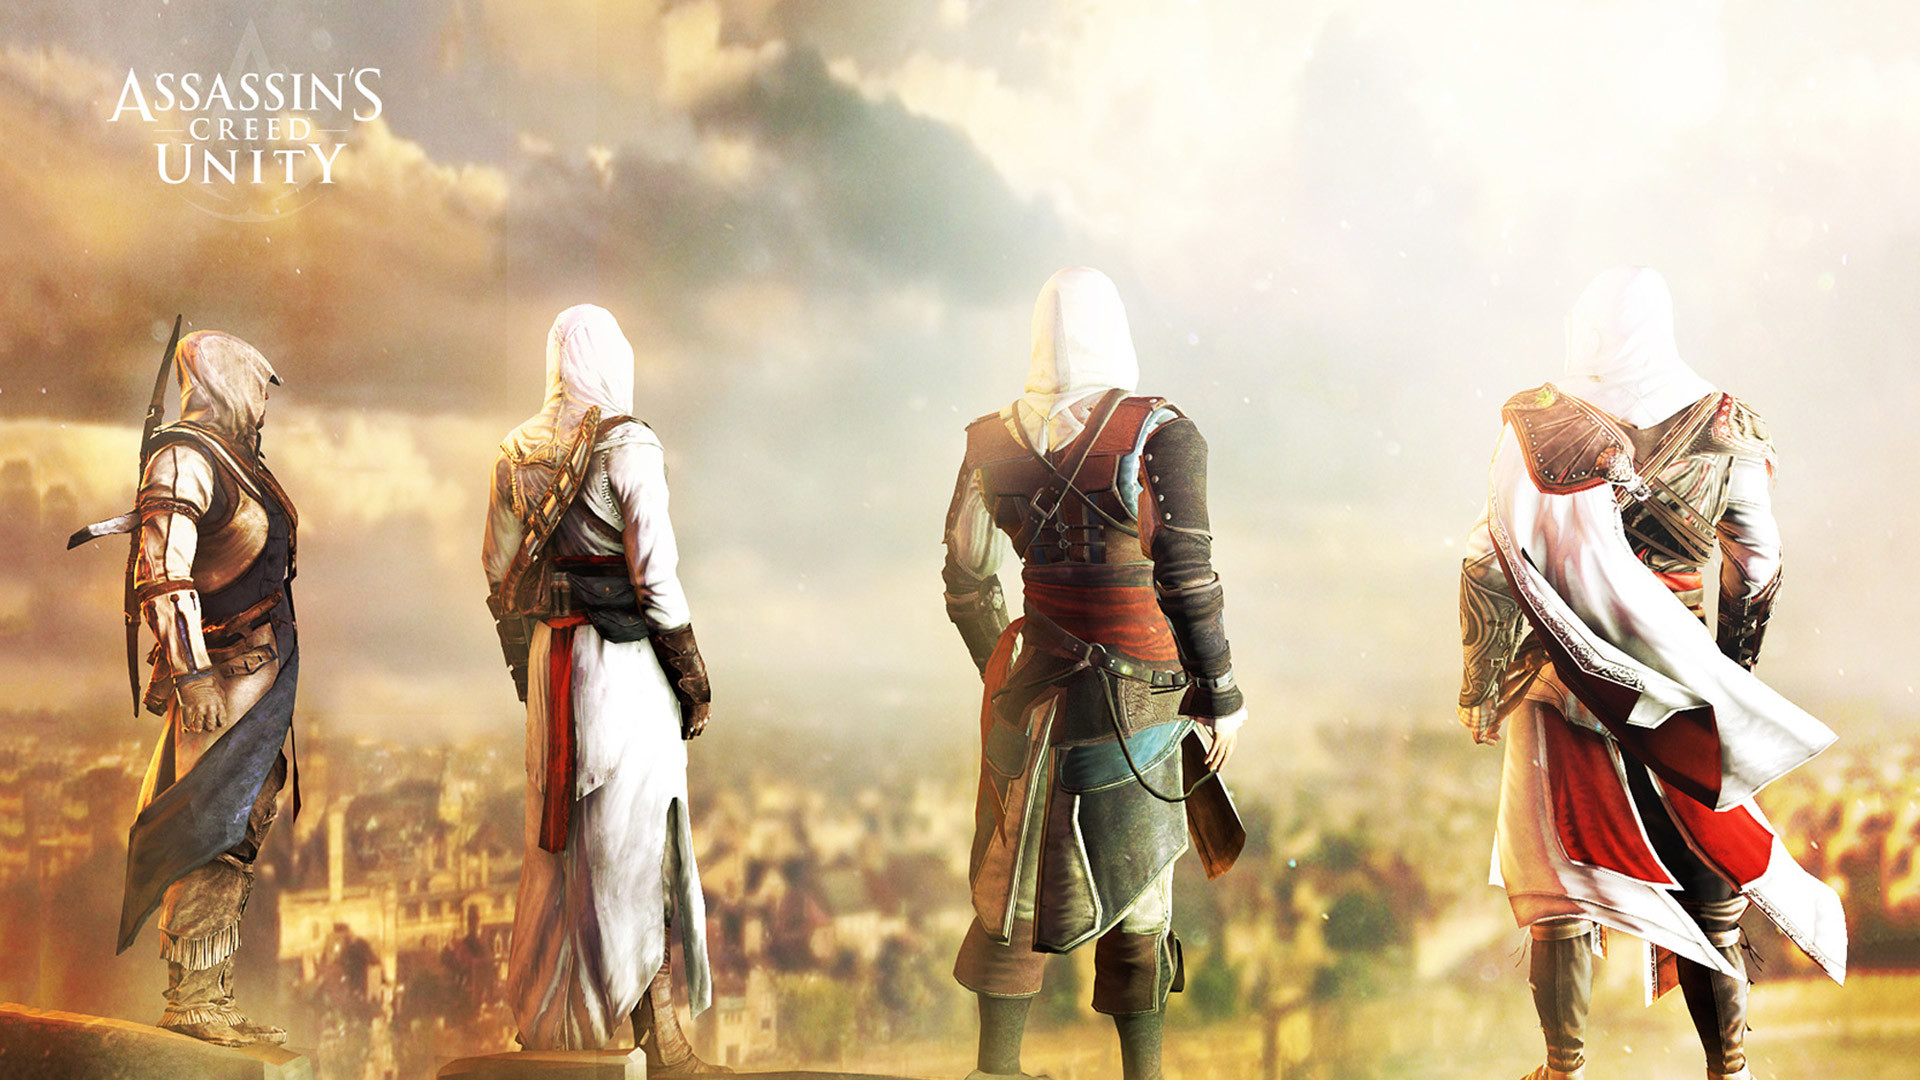 Free Assassin's Creed: Unity Wallpaper in 1920×1080